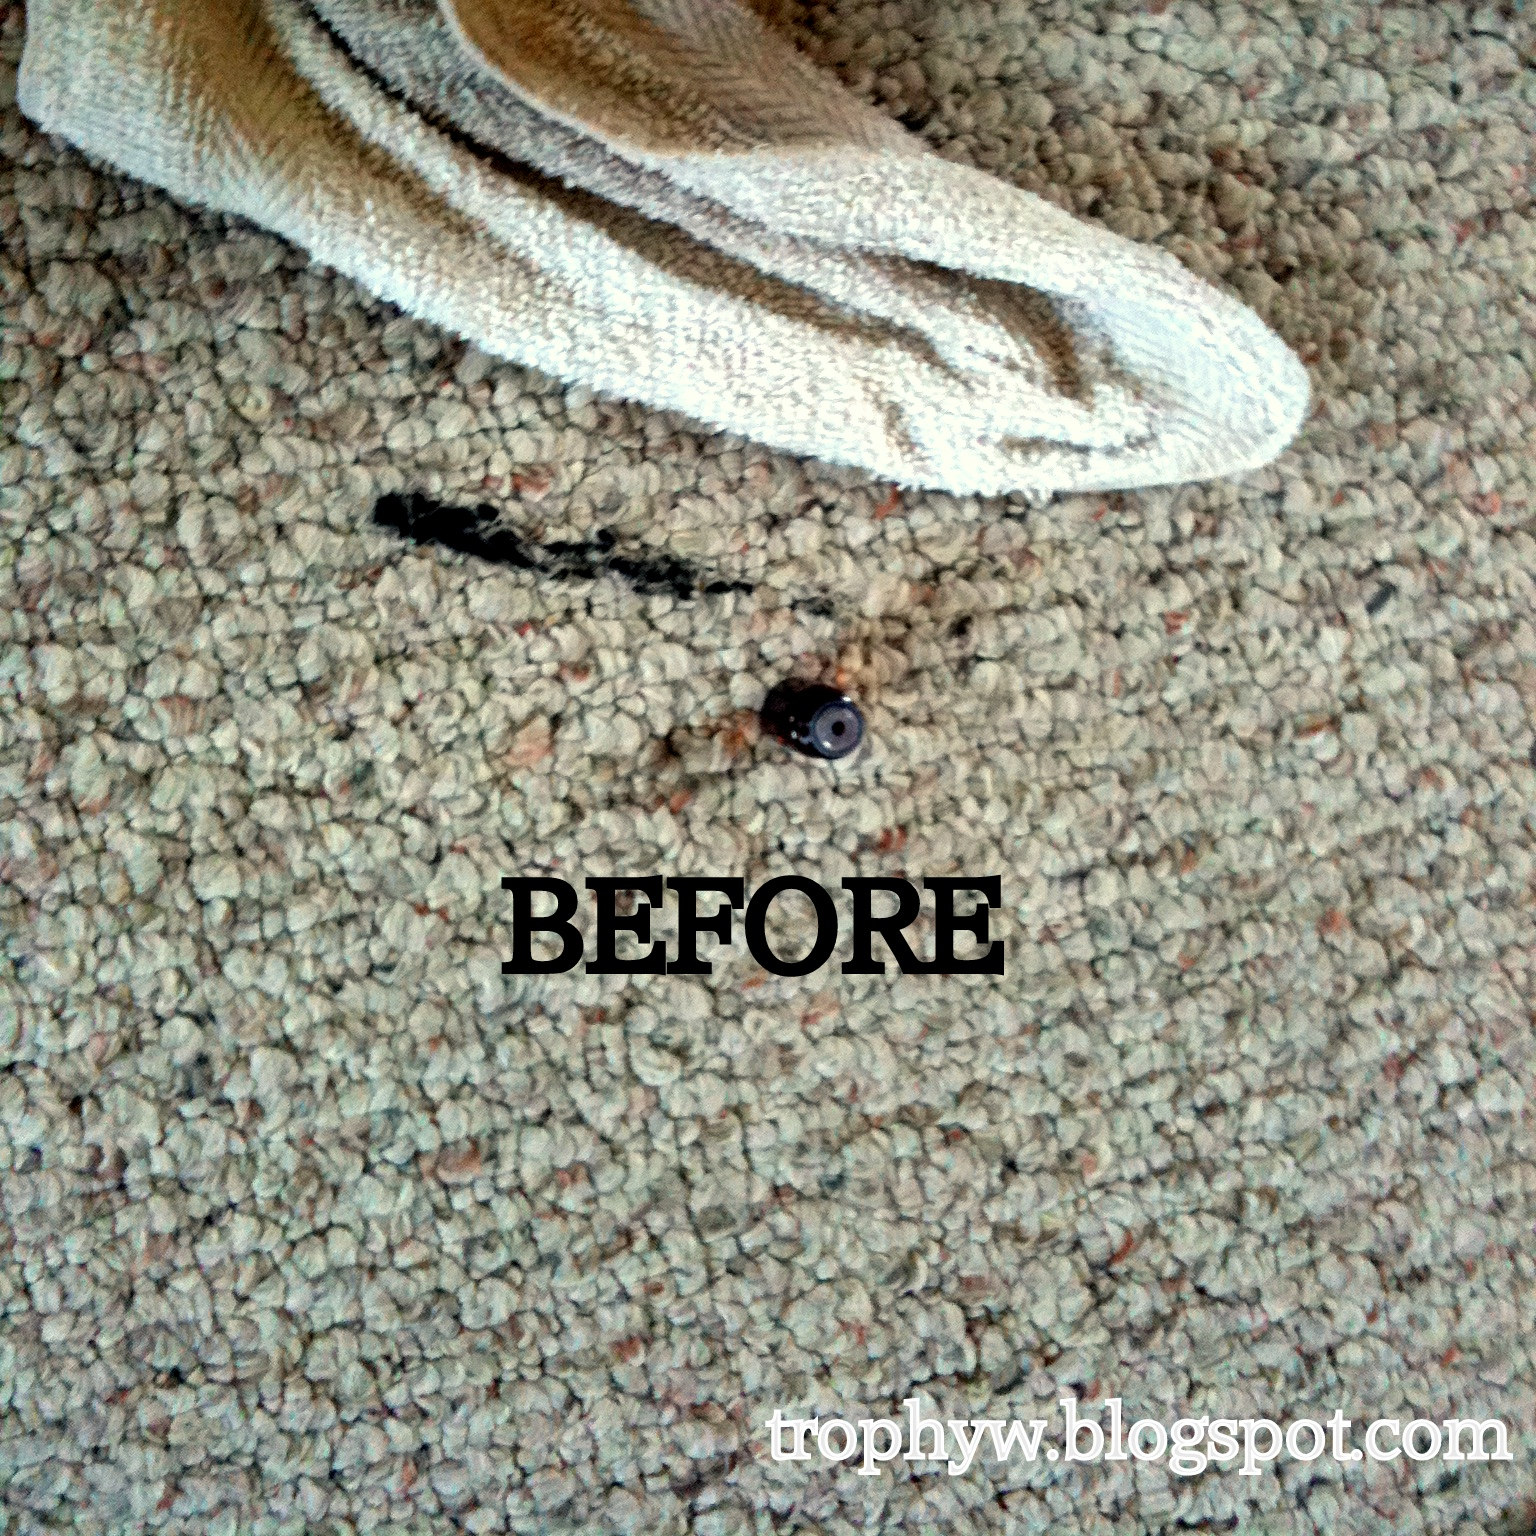 Remove Black Grease From Carpet http://trophyw.blogspot.com/2013/01/how-to-remove-oil-based-paint-from.html